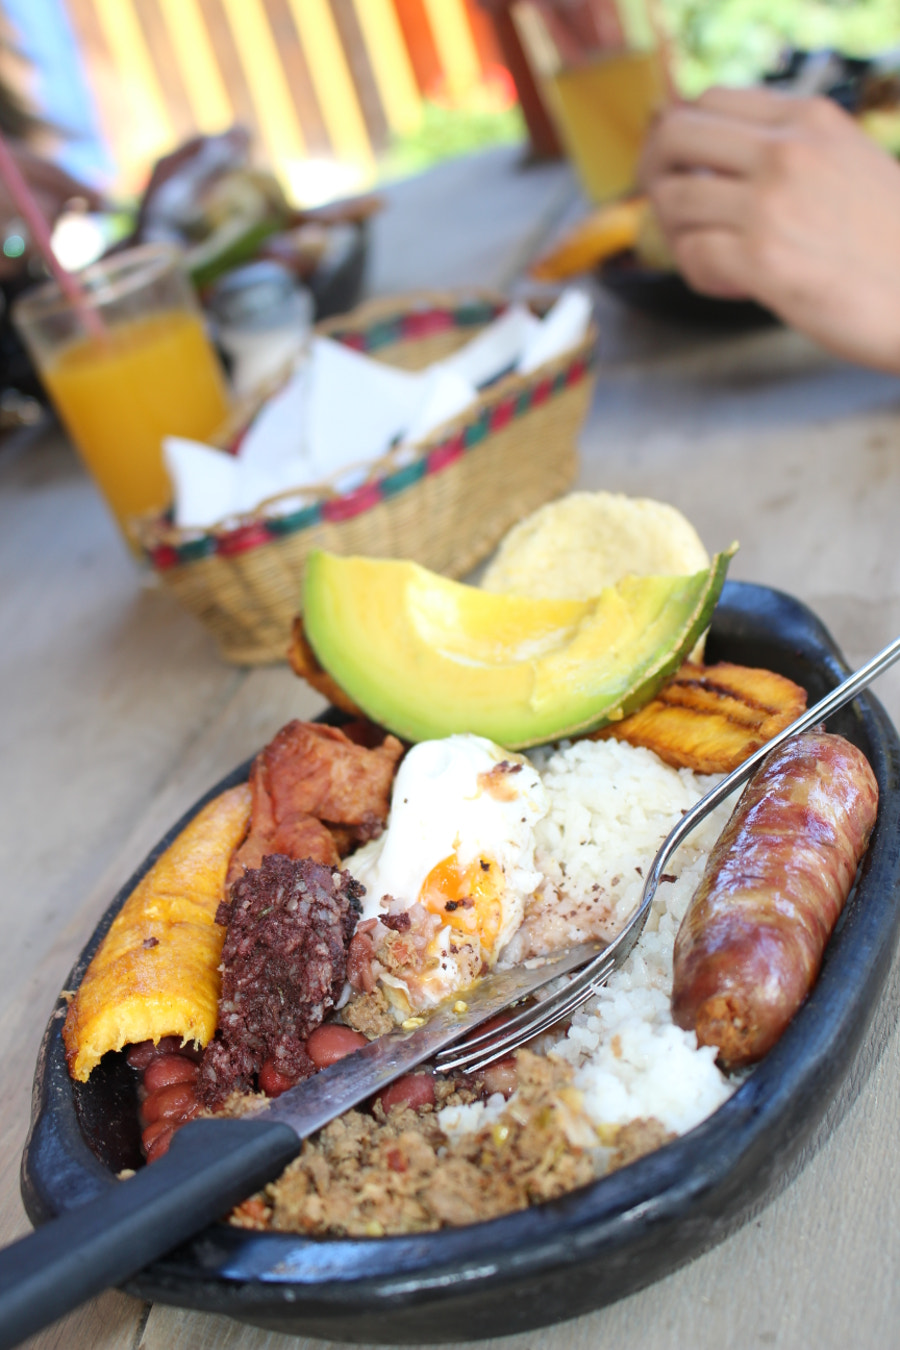 Photograph Bandeja Paisa by Egberto Antonio Carreño Parra on 500px